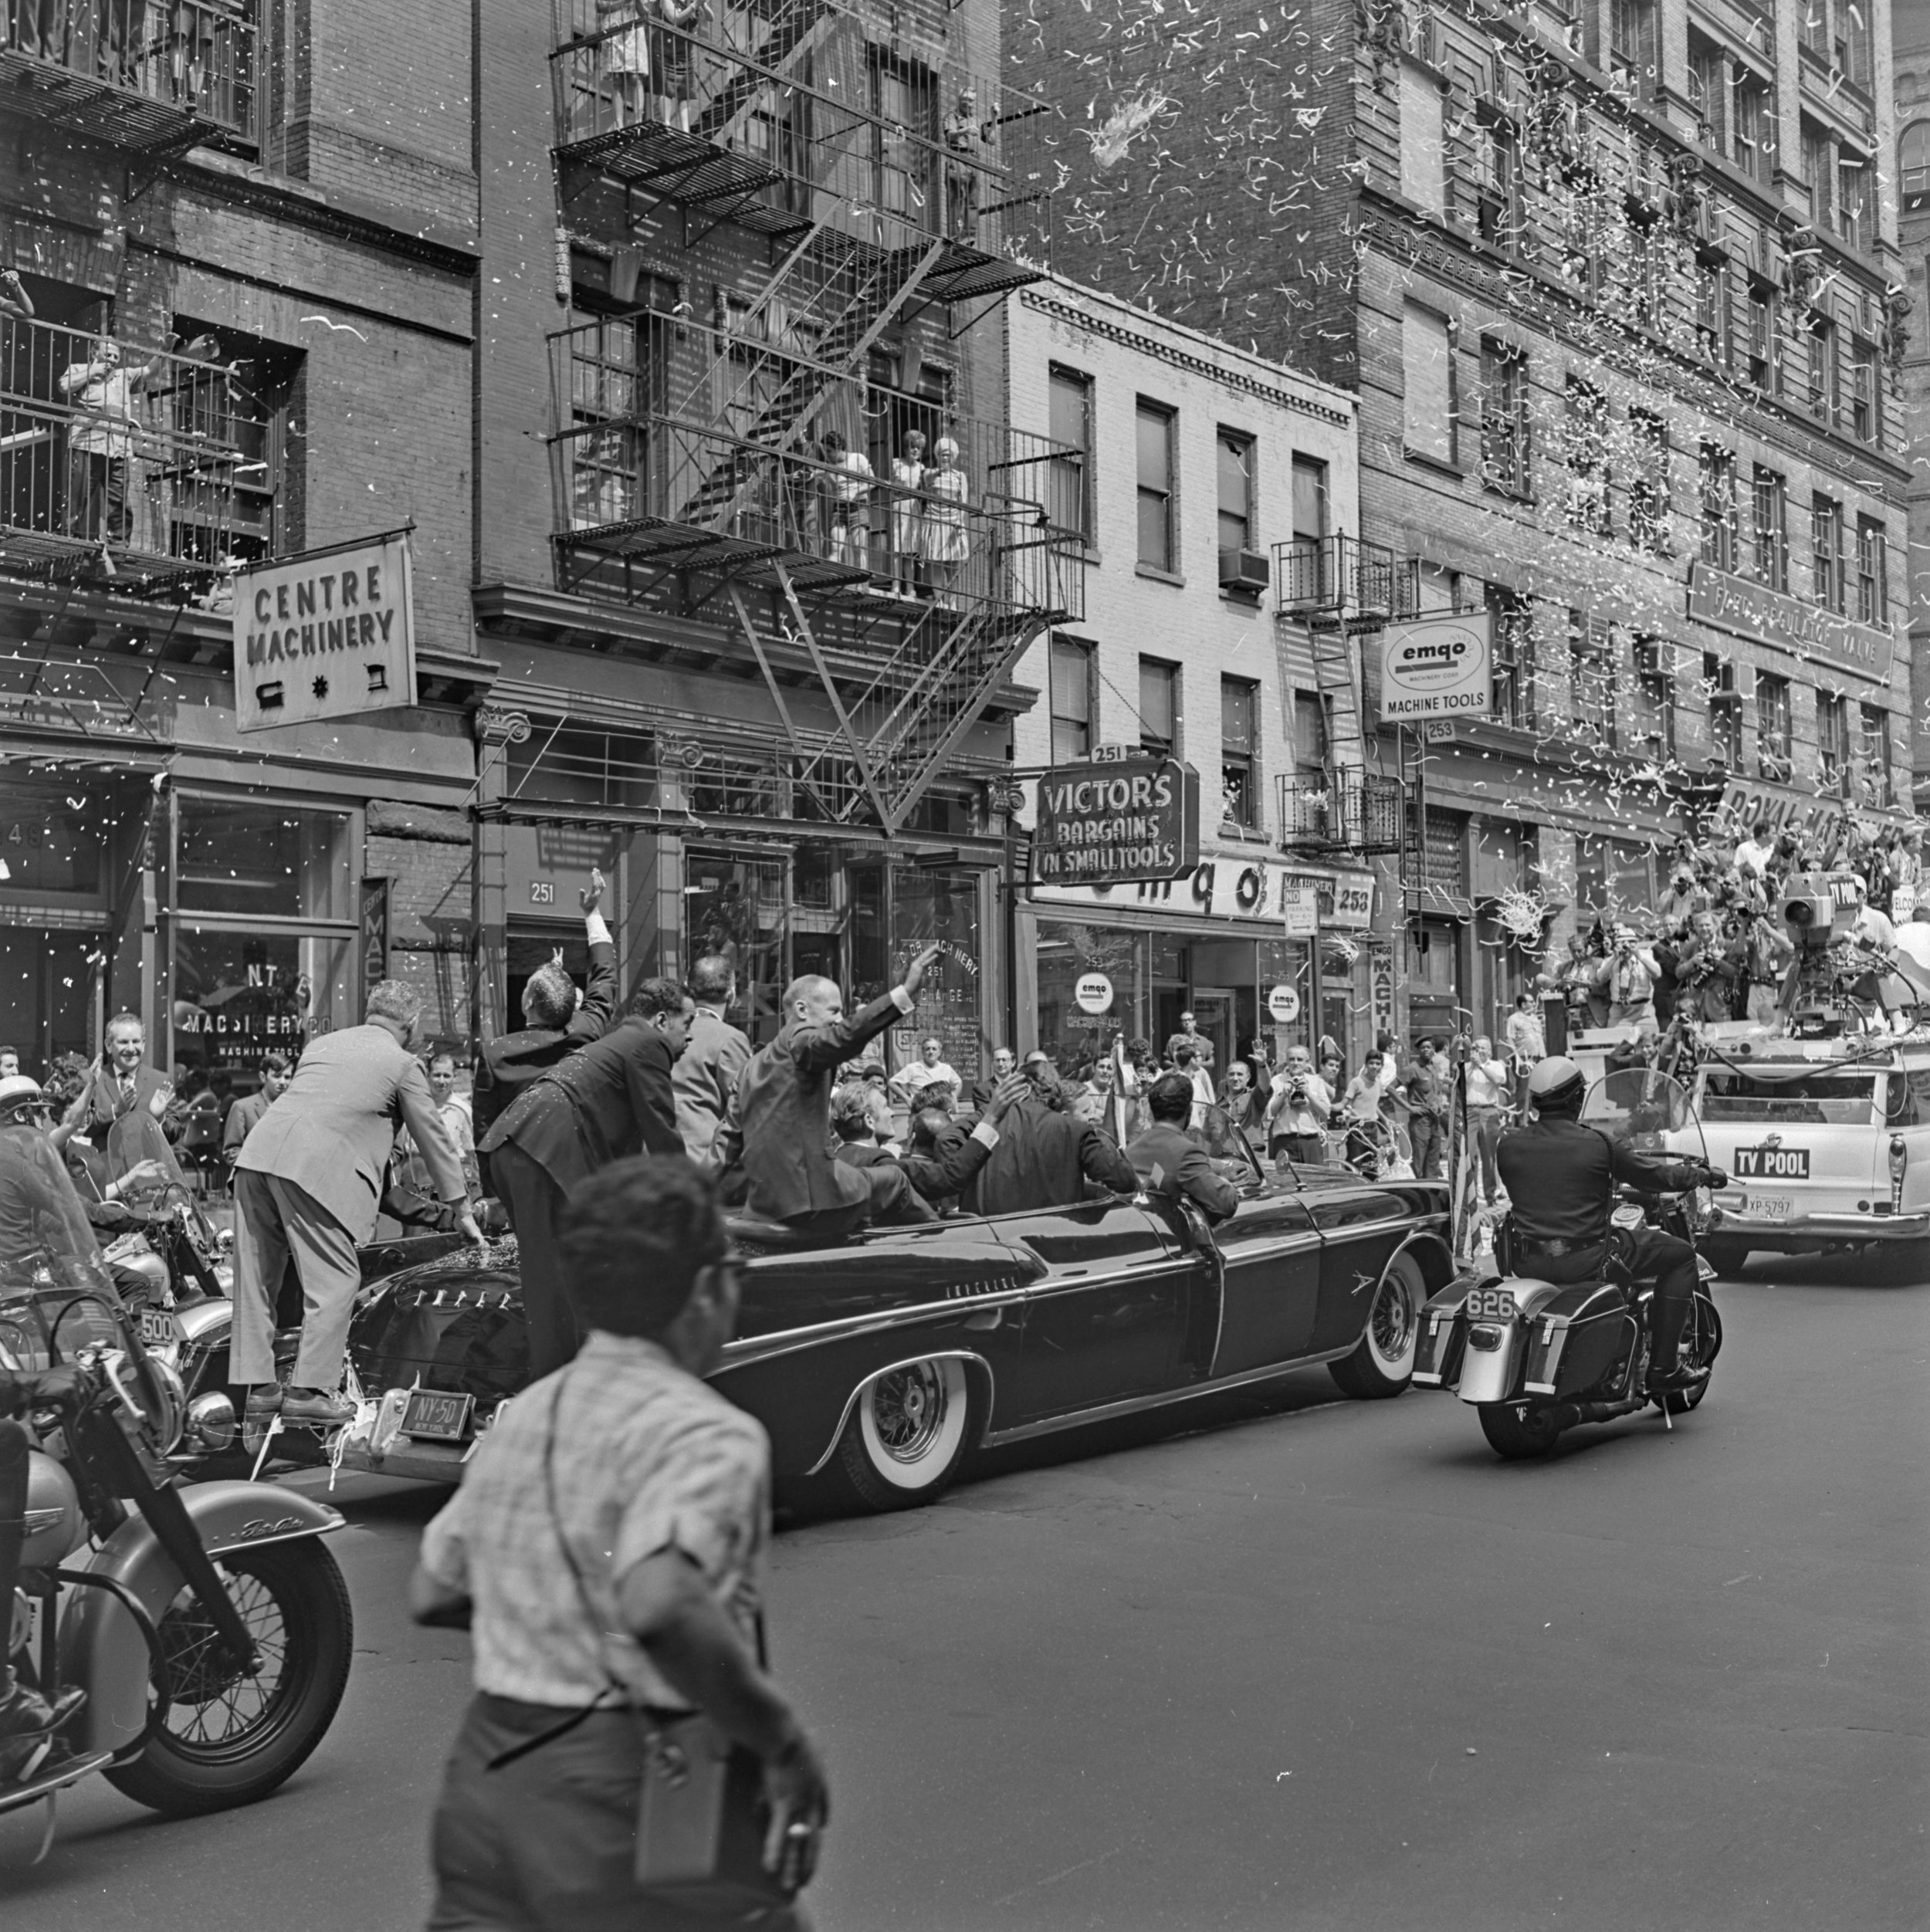 Spectators and more confetti greet the Apollo 11 Astronaut motorcade on Centre Street, August 13, 1969. NYPD Collection, NYC Municipal Archives.